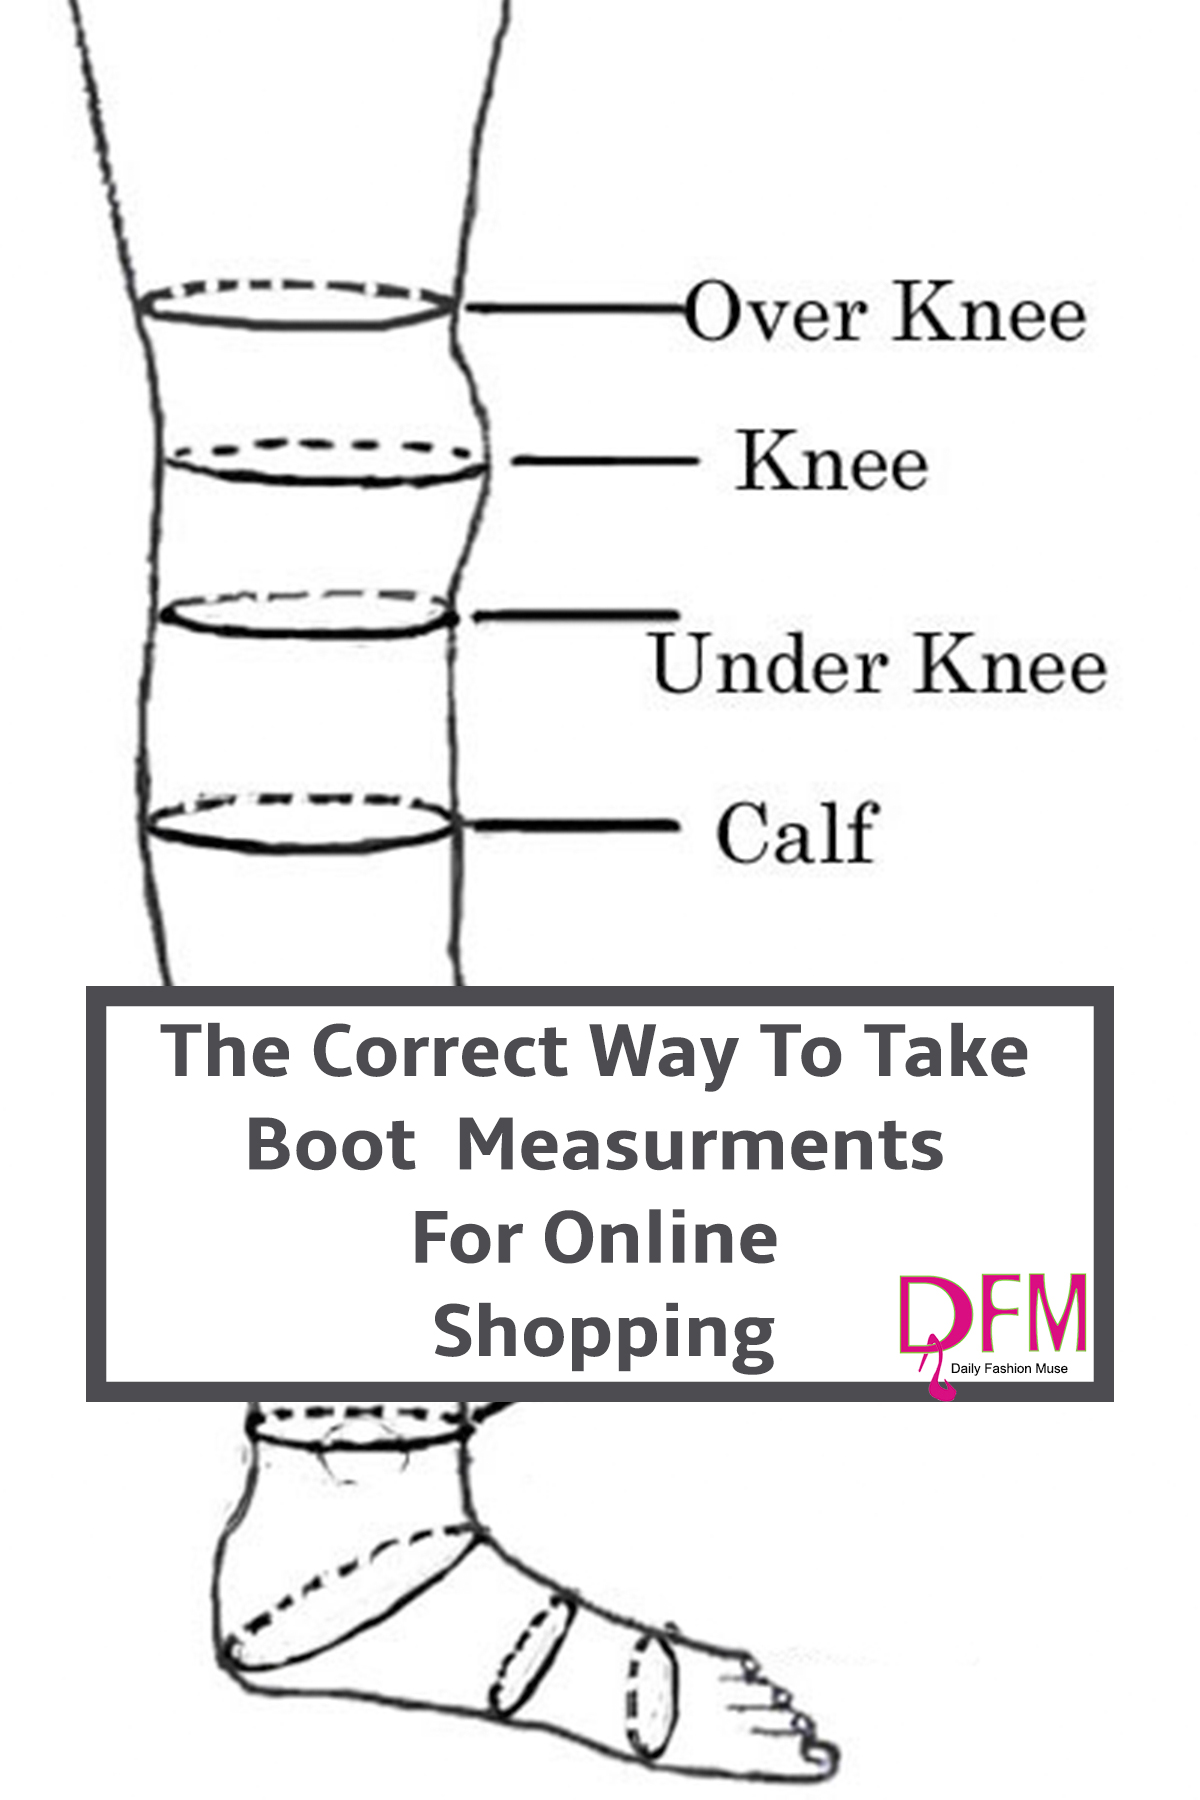 Here is how you can take the correct boot measurements when shopping online so you know what you are buying.